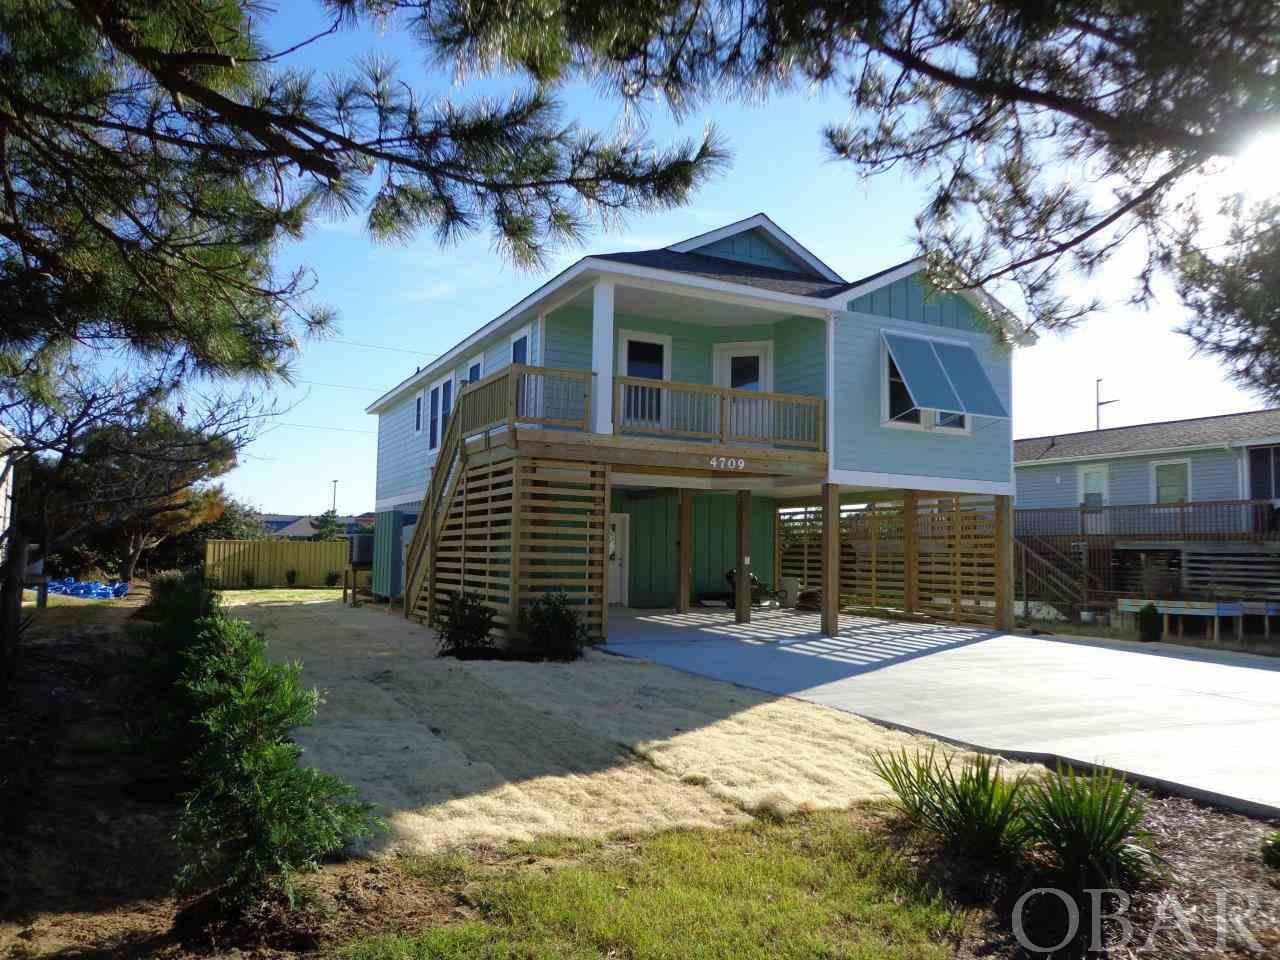 4709 Pompano Court, Nags Head, NC 27959, 4 Bedrooms Bedrooms, ,3 BathroomsBathrooms,Residential,For sale,Pompano Court,101601